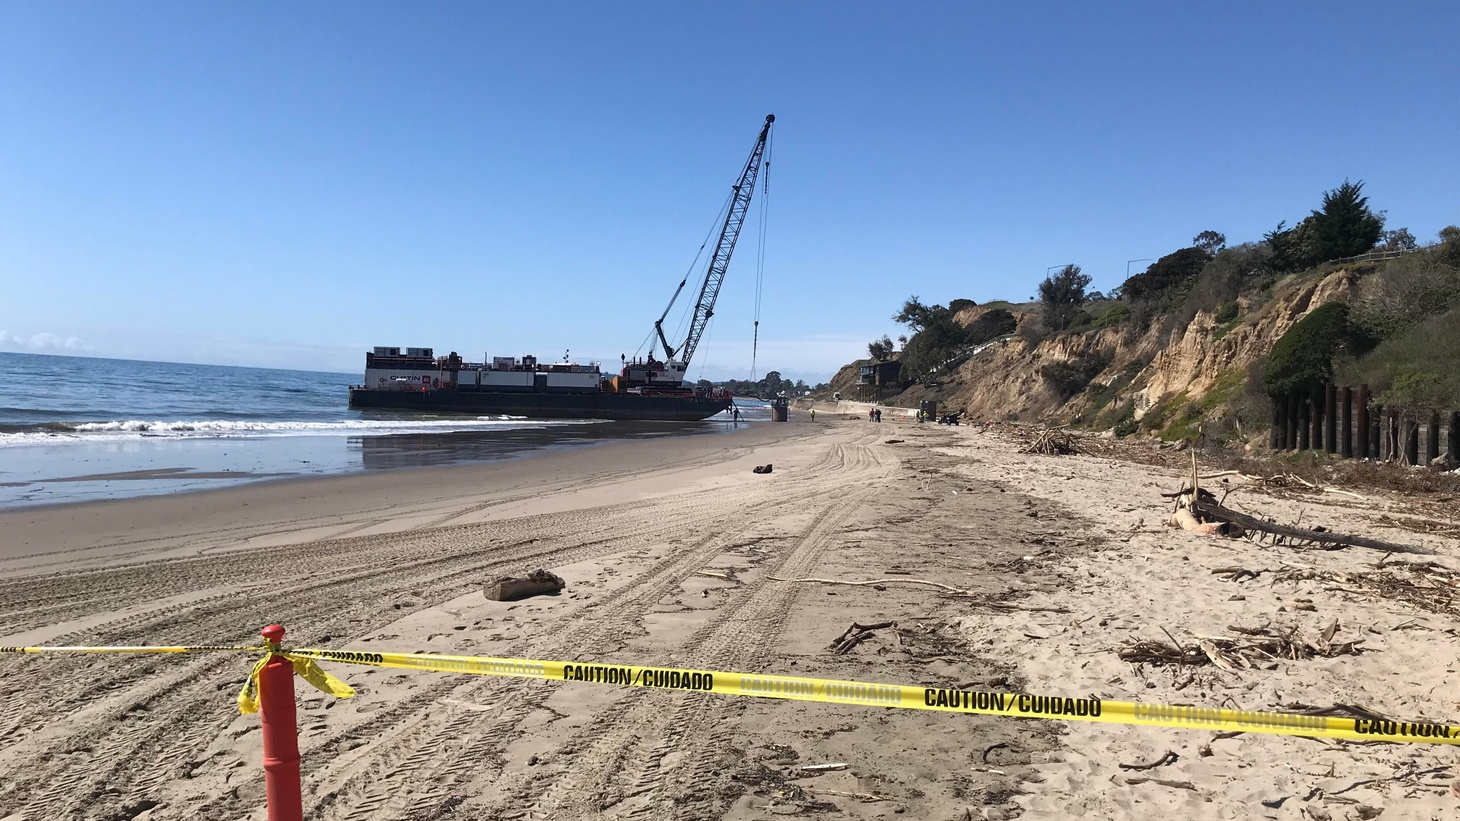 After years of legal and legislative battles, an abandoned, leaking oil well off Summerland Beach has been capped. A new fund is helping undocumented immigrants who can't access federal disaster assistance.